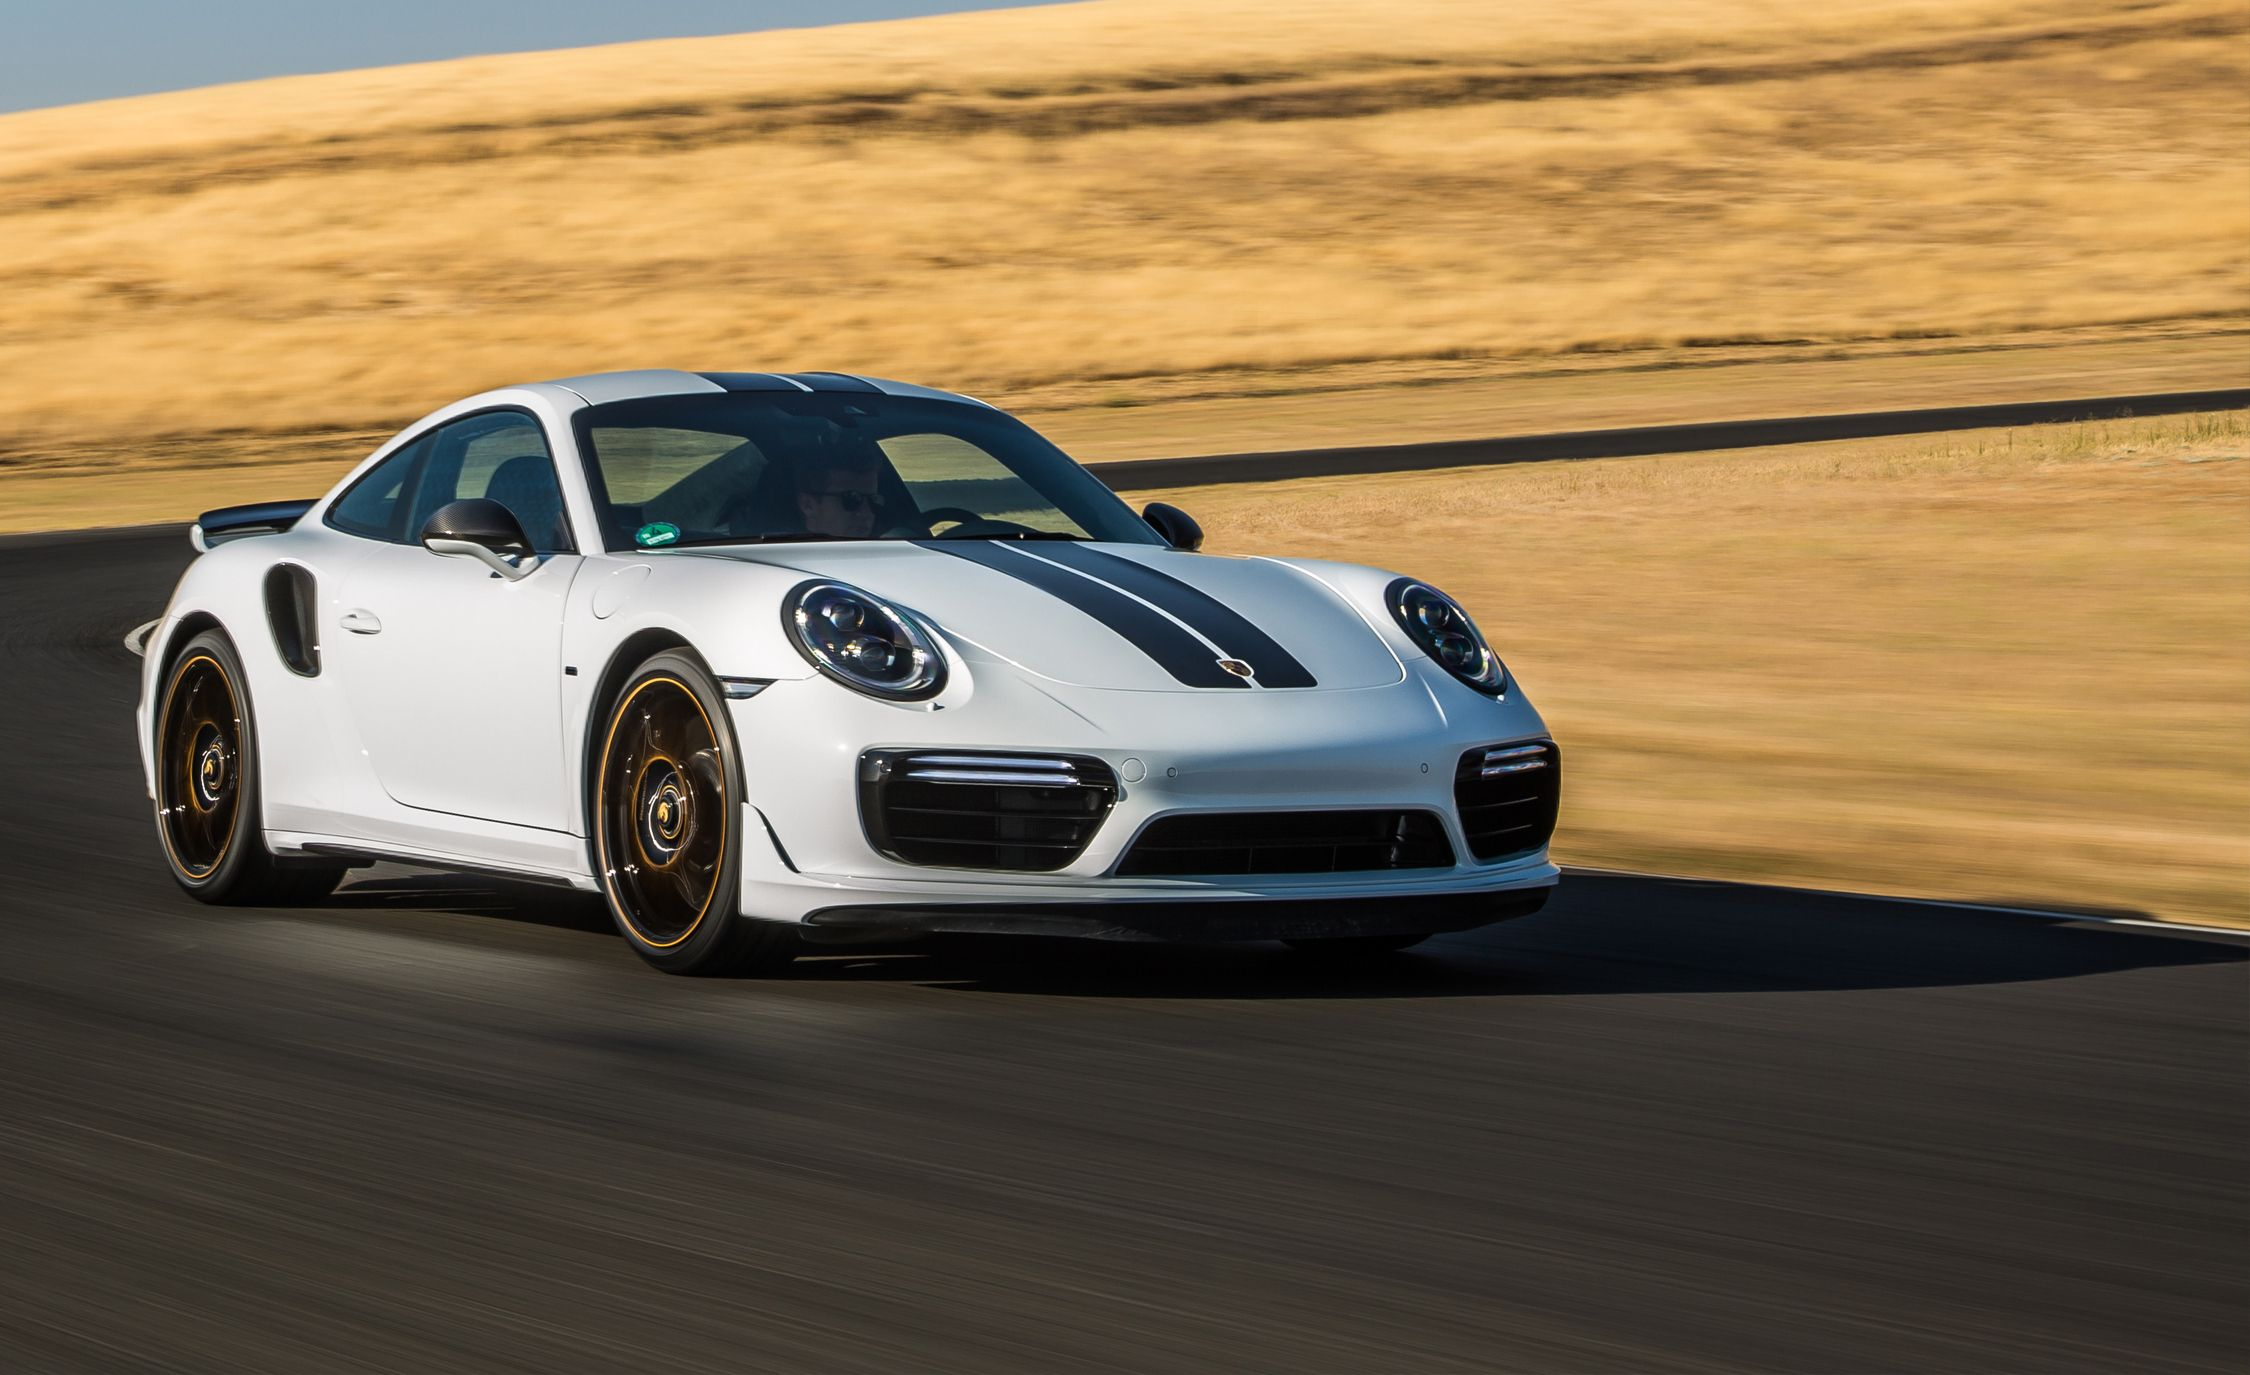 2018 Porsche 911 Turbo S Exclusive First Drive Review Car And Driver